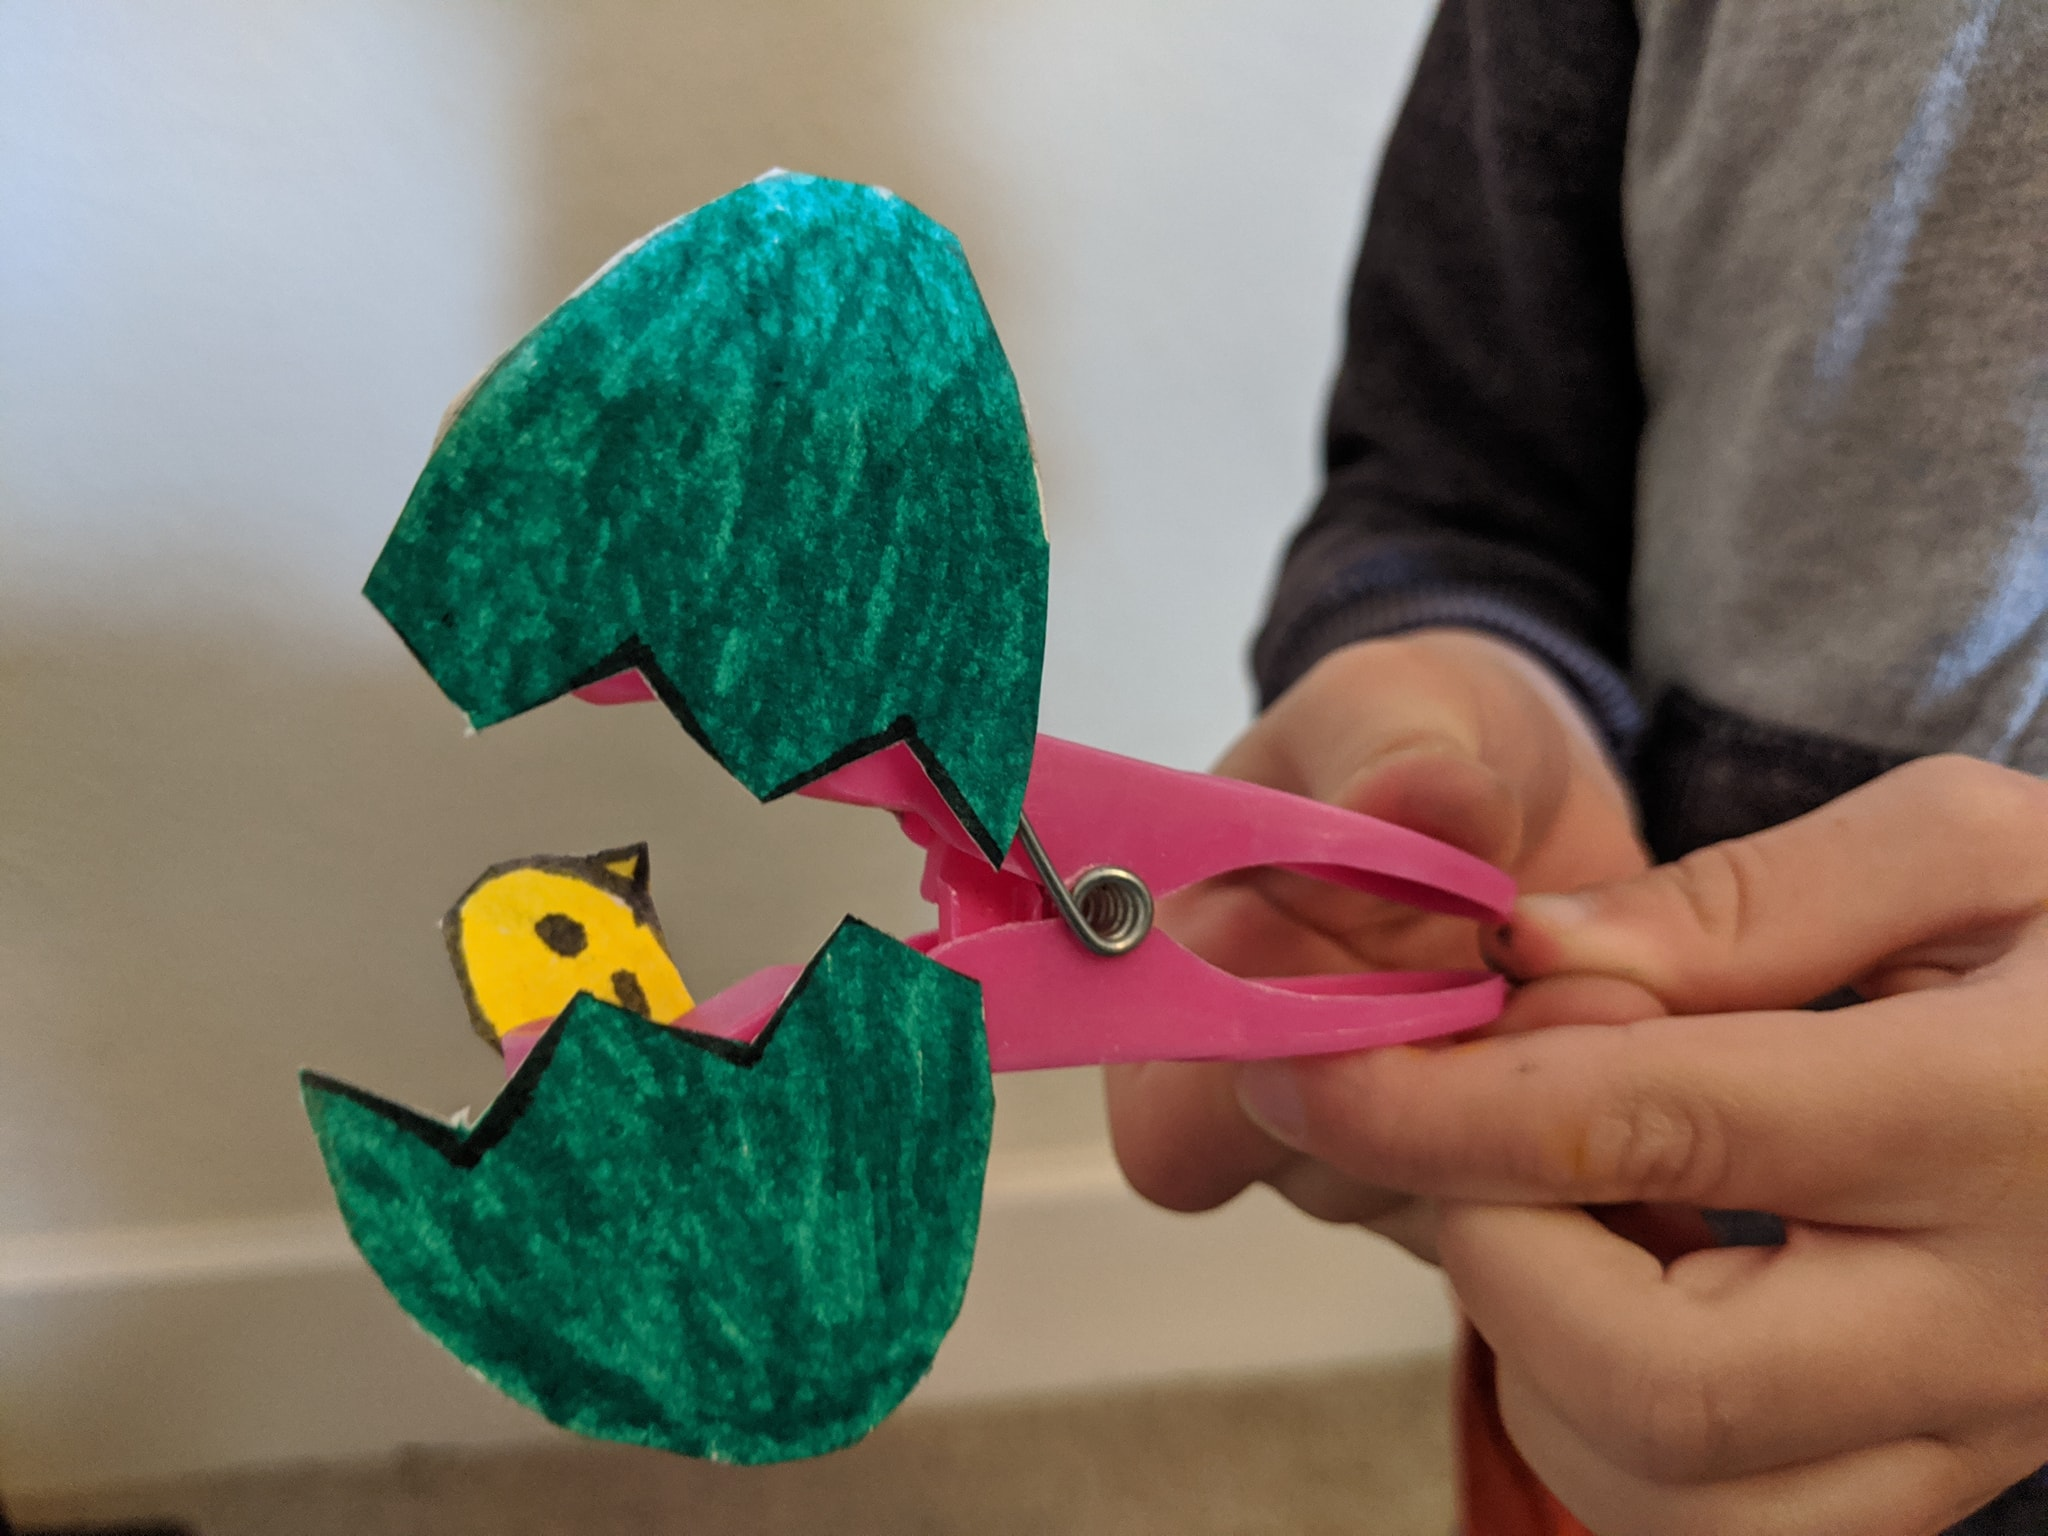 Easter craft on a peg. A hand is pinching the peg to split the chick egg open to reveal a chick